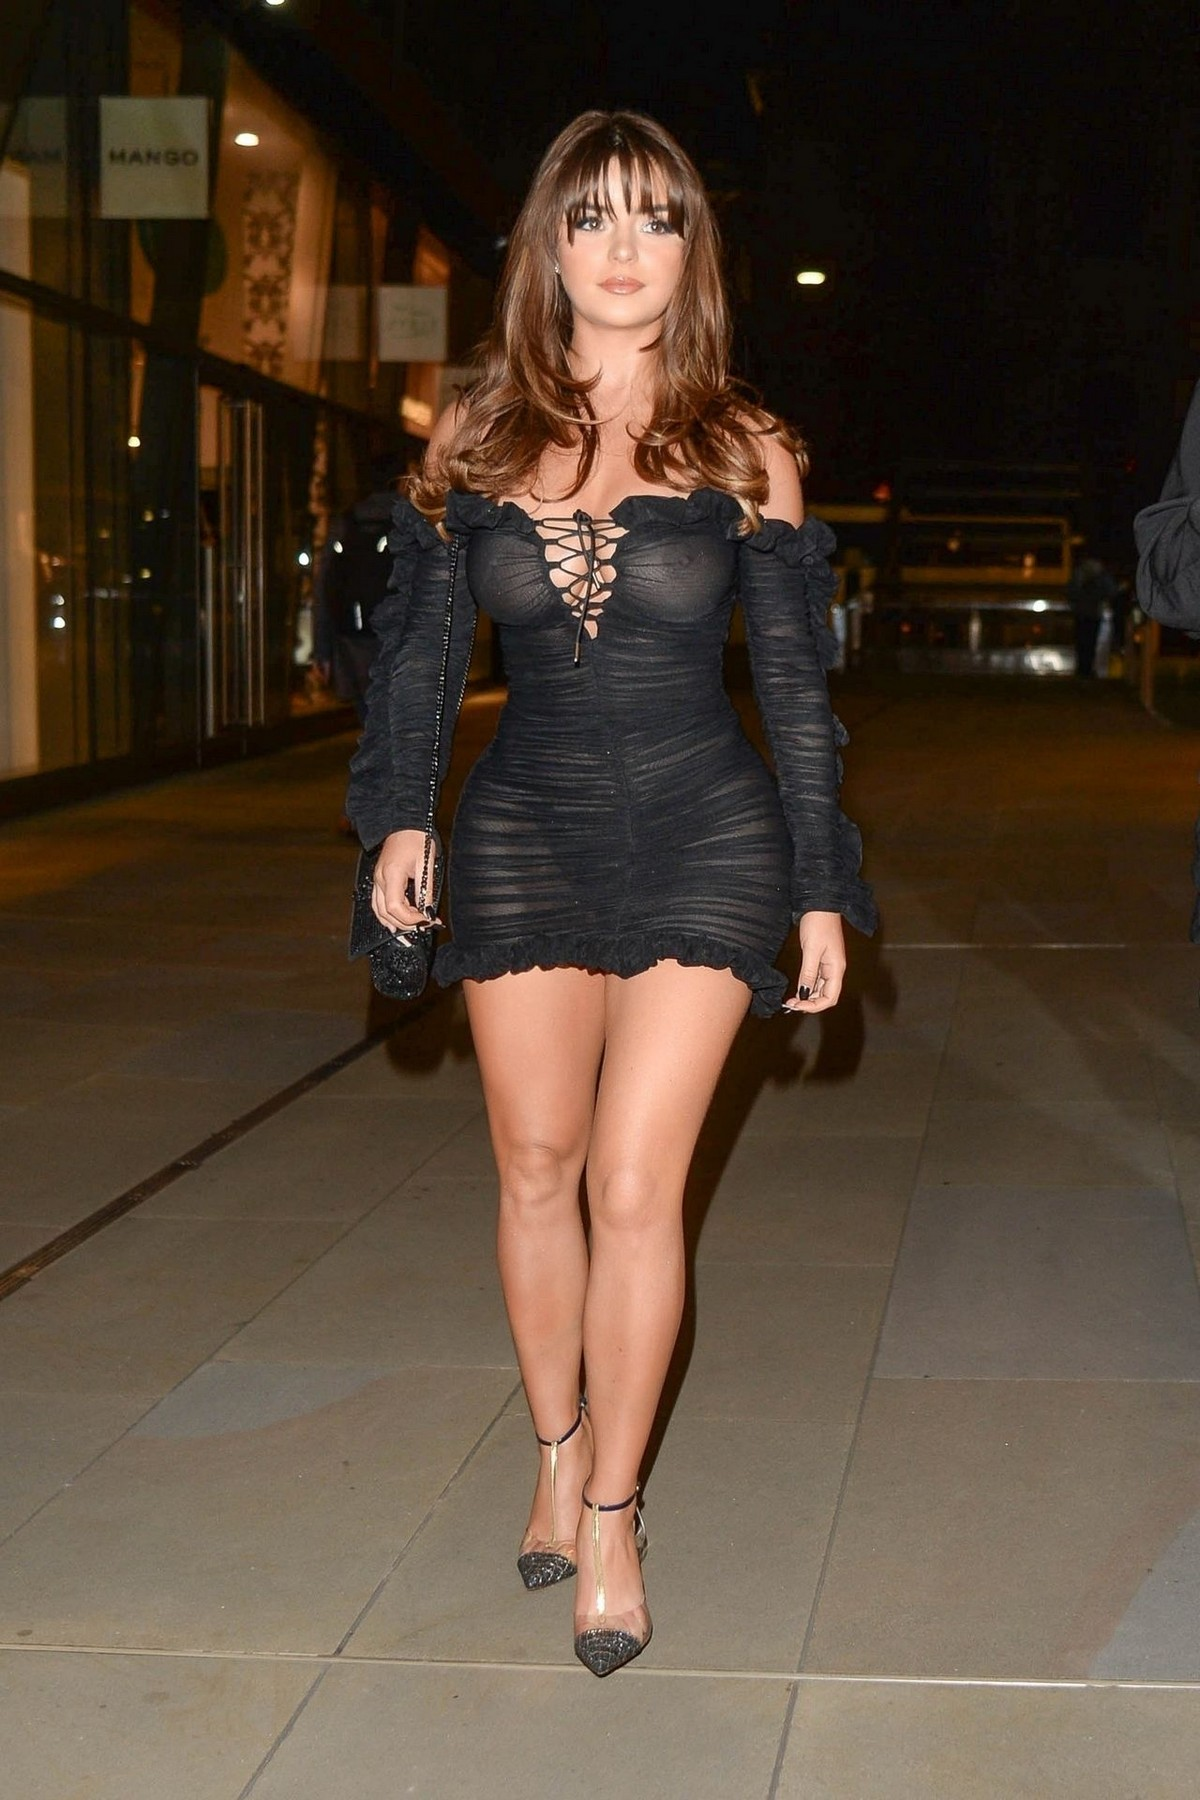 Demi Rose Mawby seen in Stylish Short Dress at The Skinny Tan Choc Range launch party in Madison, London 2019/11/19 19